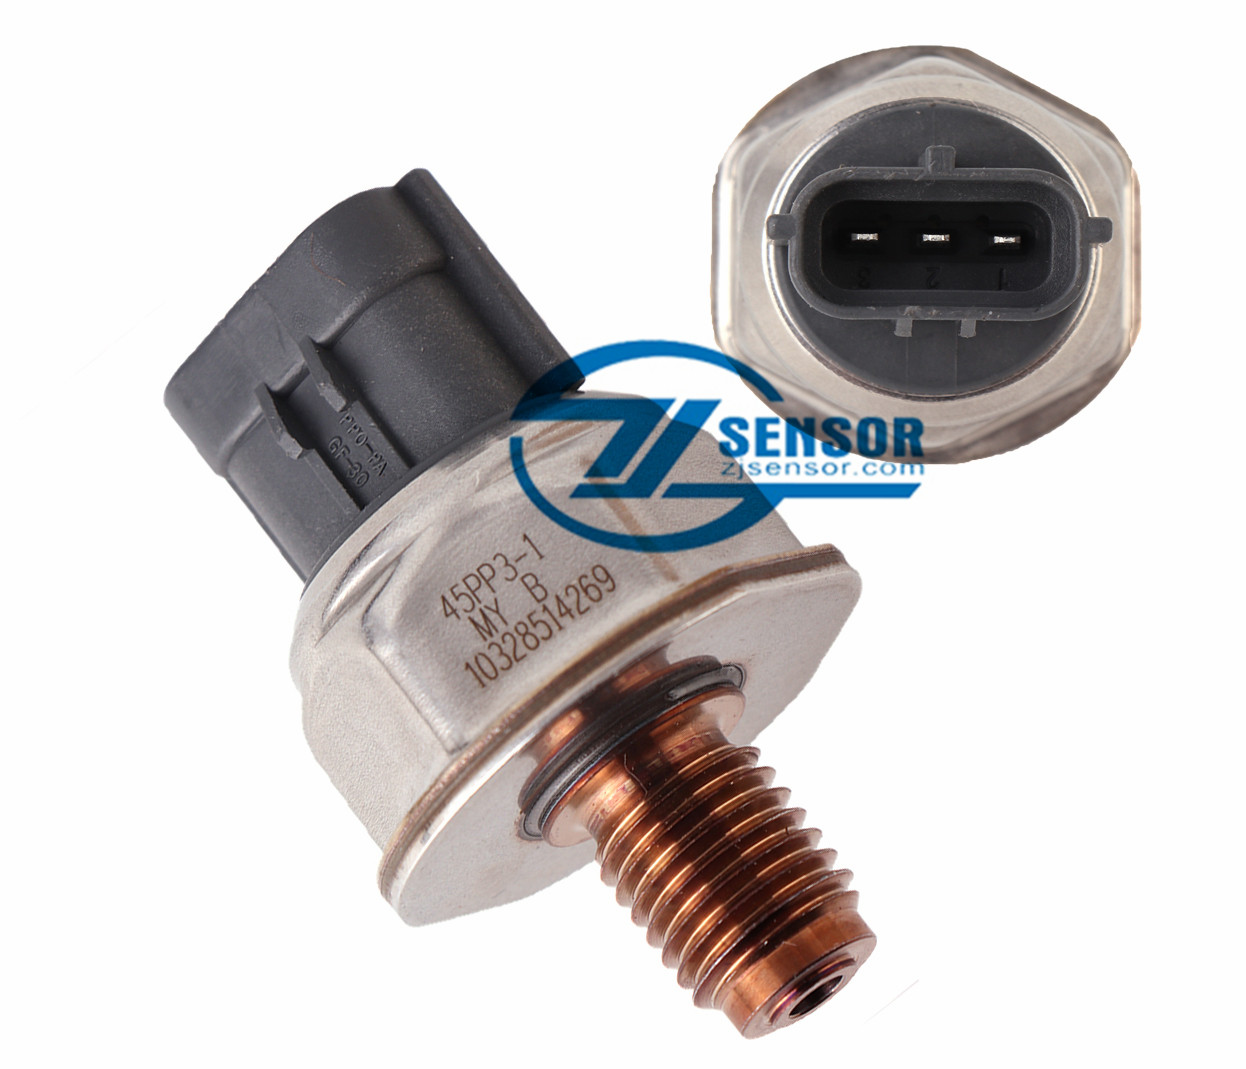 45PP3-4 Common Rail High Pressure Sensor For Ford Transit 2.2 & 2.4 / Citroen Relay 2.2 & 2.4 / Fiat Ducato 2.2 & 2.4 / Mitsubishi 4D56 / Isuzu / Land Rover 2.2 & 2.4